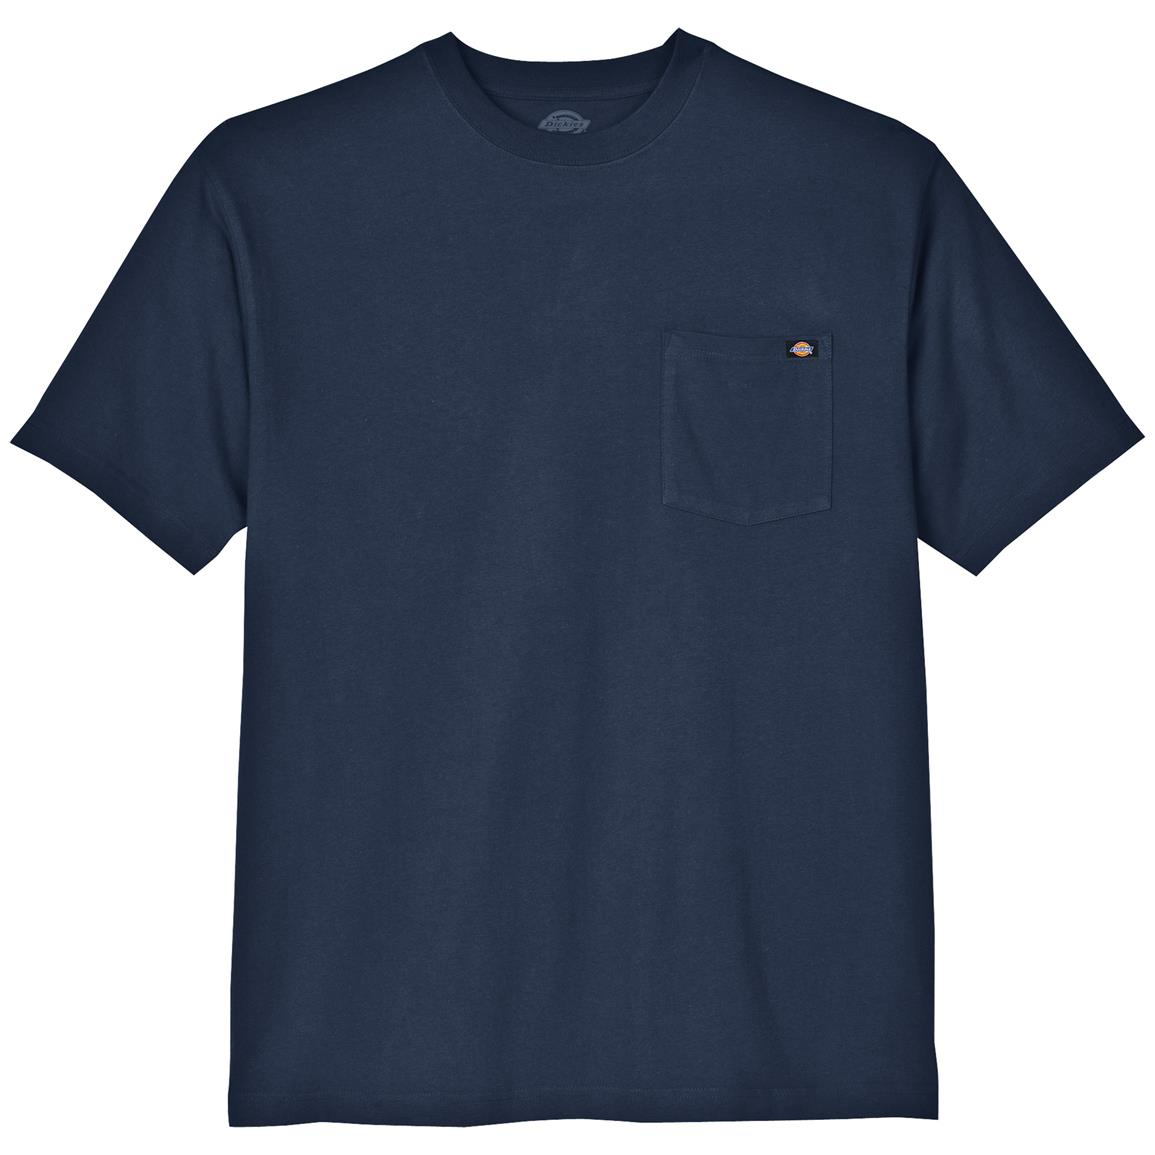 Dickies® Short-sleeved Heavyweight Crew Neck T-shirt, Dark Navy